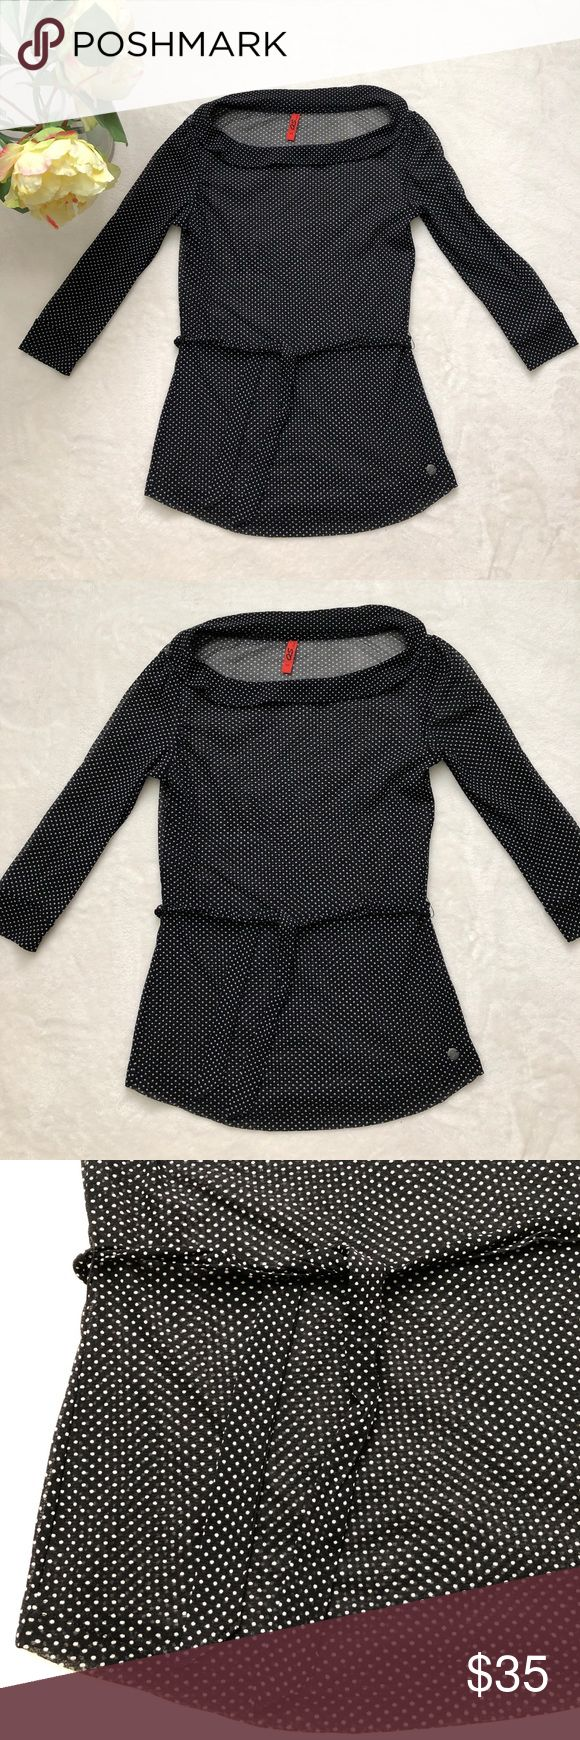 """⭐️Oliver⭐️ polka dots black with white top 🌺Approximately measurements: Length: 24"""" Armpit to armpit:15"""" Sleeve:from shoulder to end:16"""" 🌸Materials: 100% polyester  🌷Condition: This item is pre-owned but in great condition with no stains. Comes from a smoke free home.  💐Size: USA XS QS By OLiver Tops Tees - Long Sleeve"""